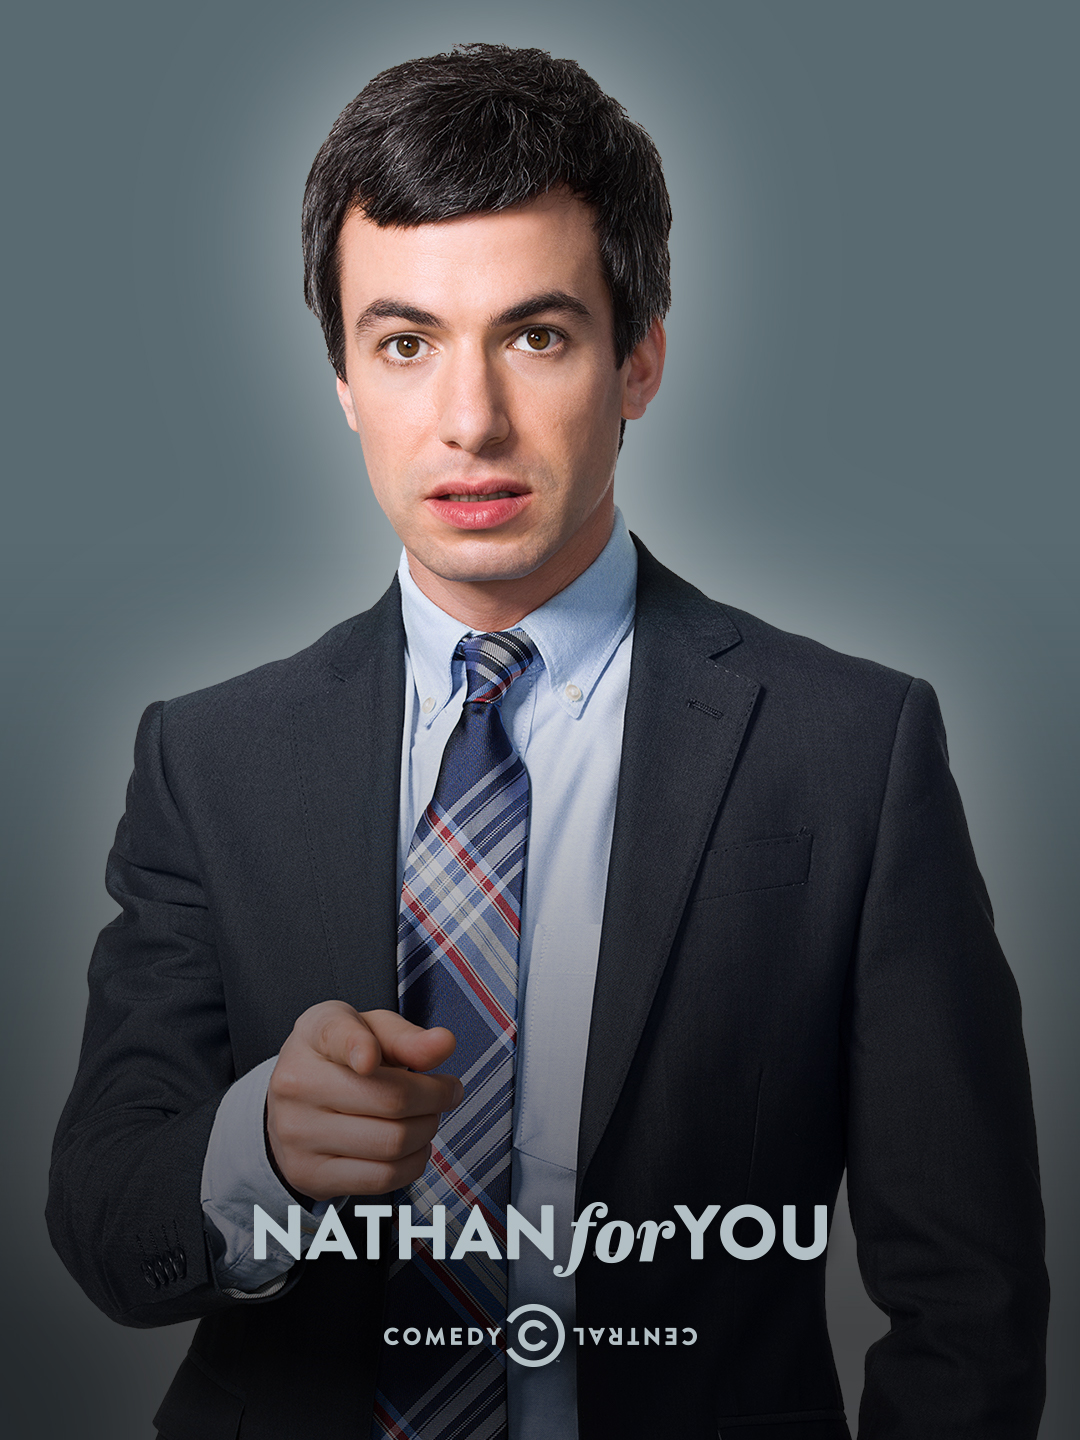 Neitanas skuba į pagalbą (1 Sezonas) / Nathan for You Season 1